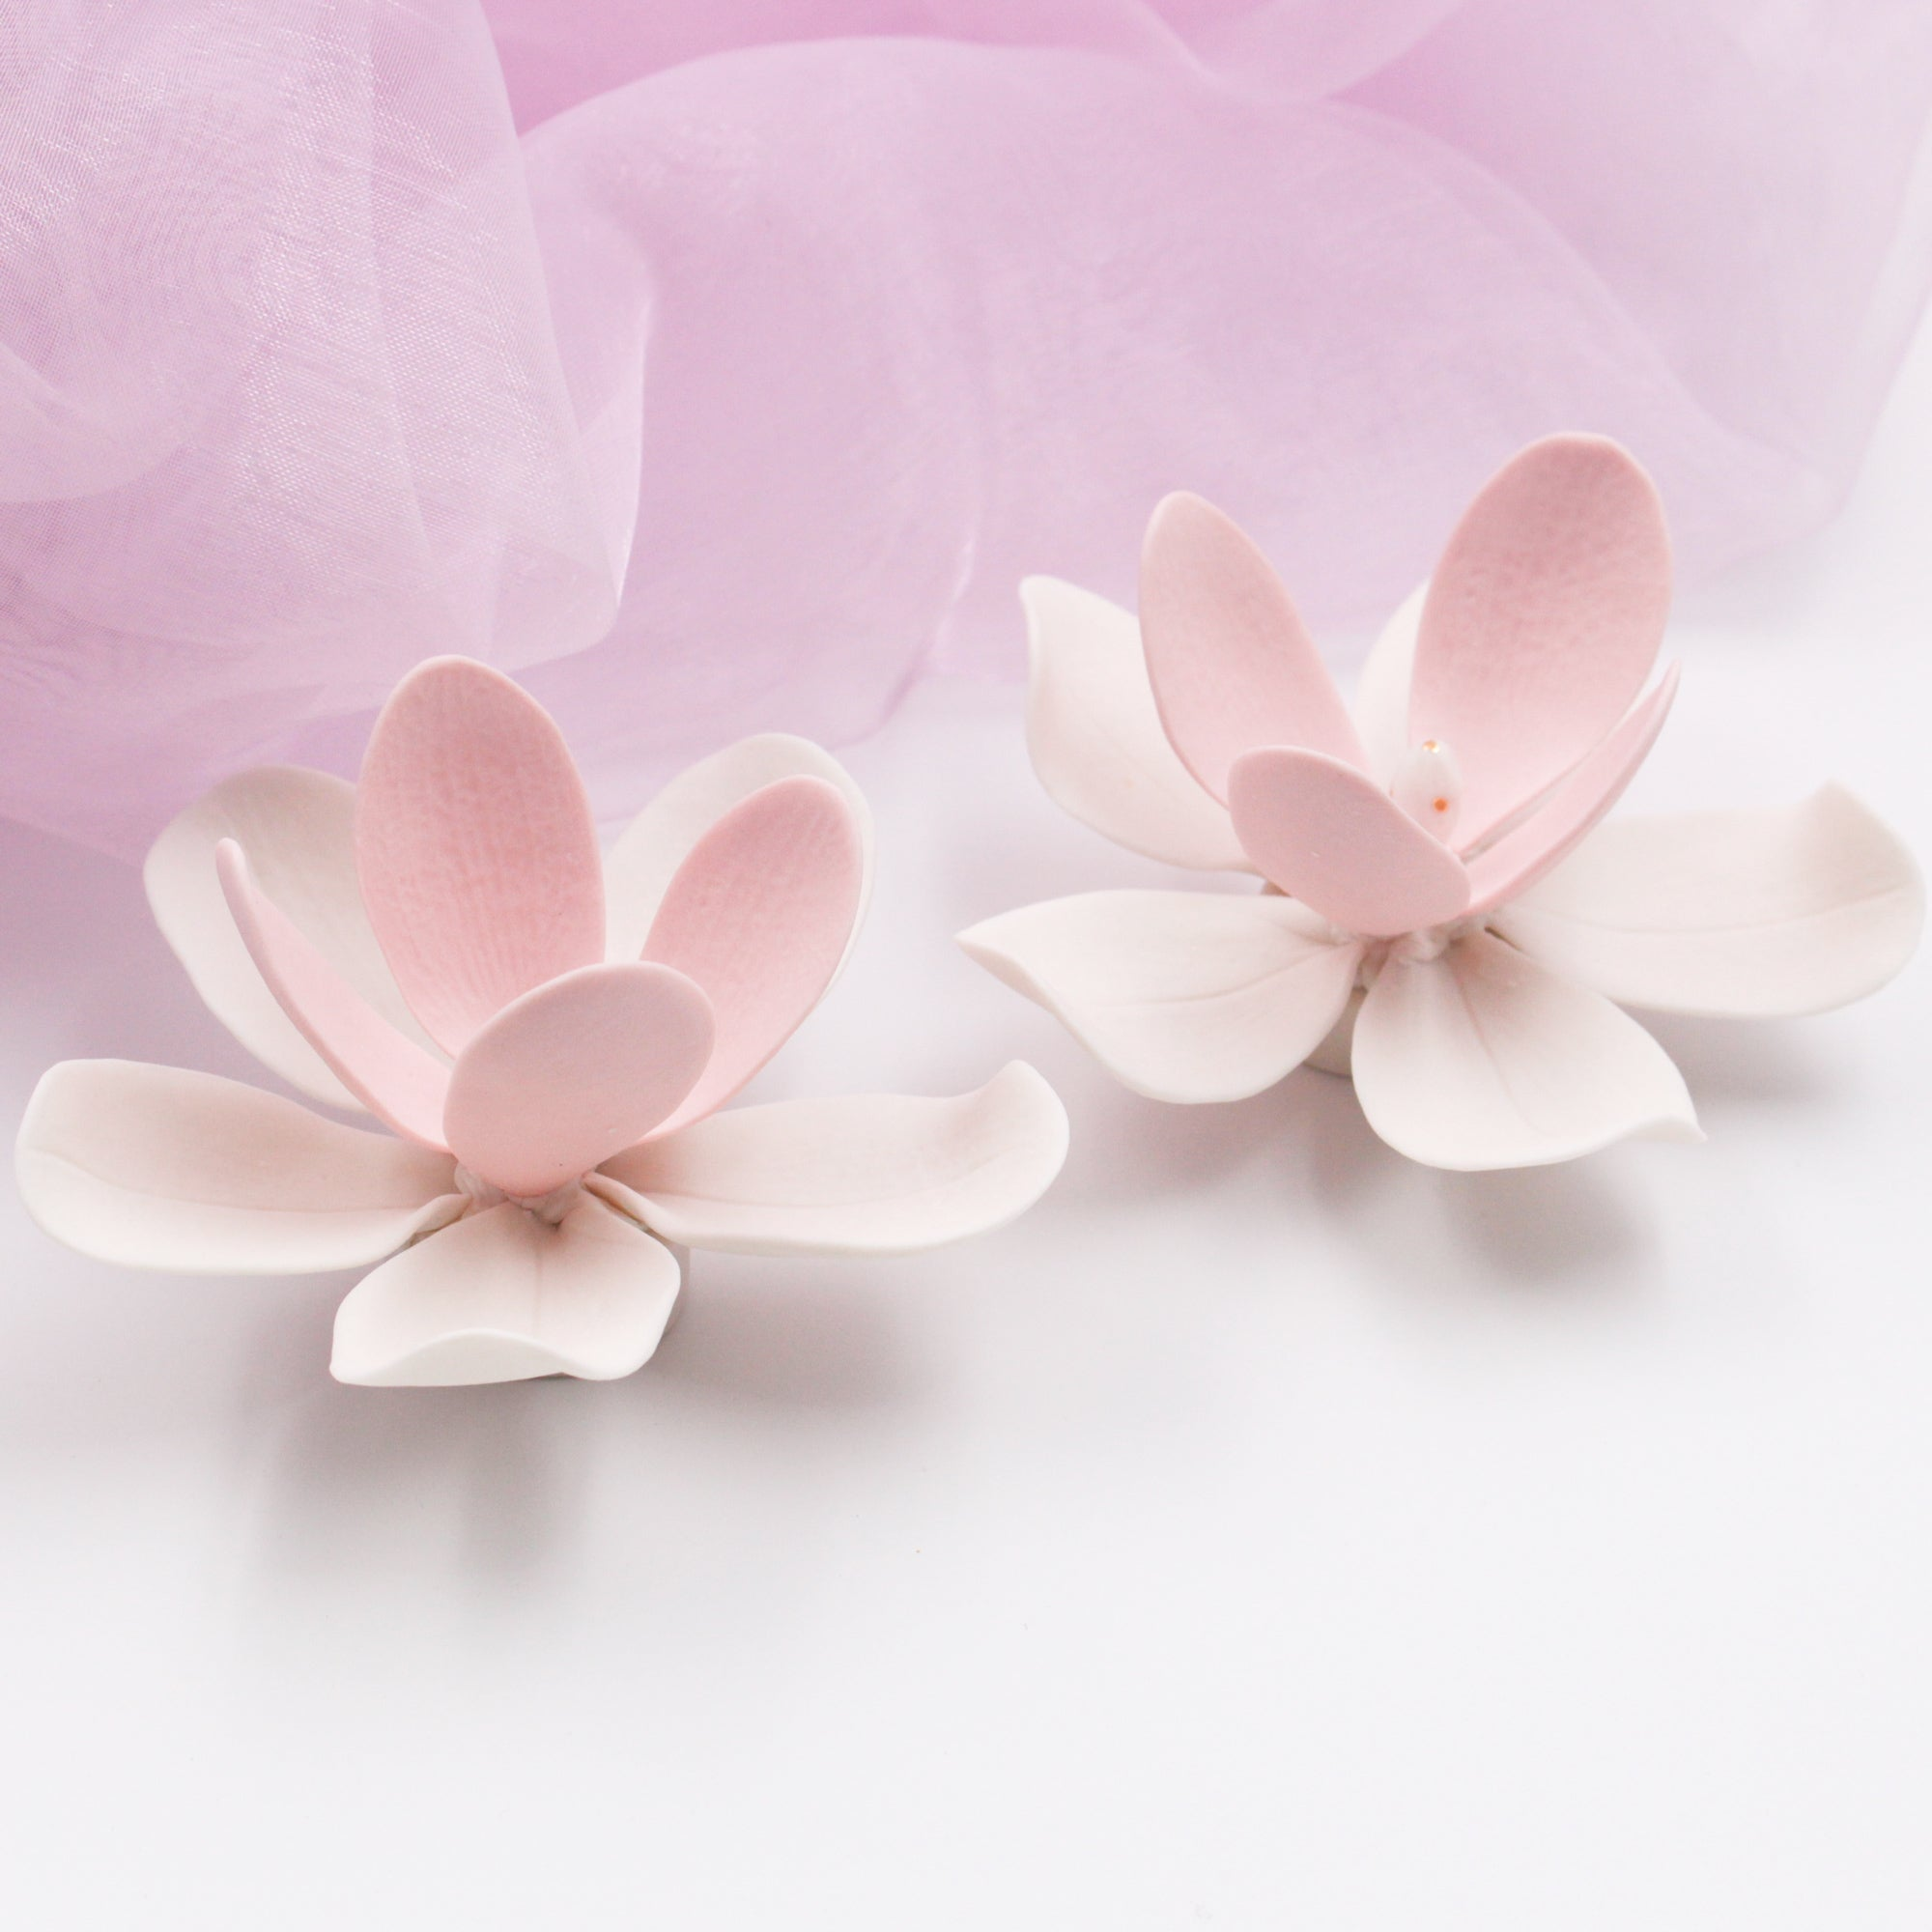 Pink Porcelain Magnolia - Handmade Porcelain Flower for Interior and Event Decoration - Made in France by Alain Granell – Home and Wall Decoration